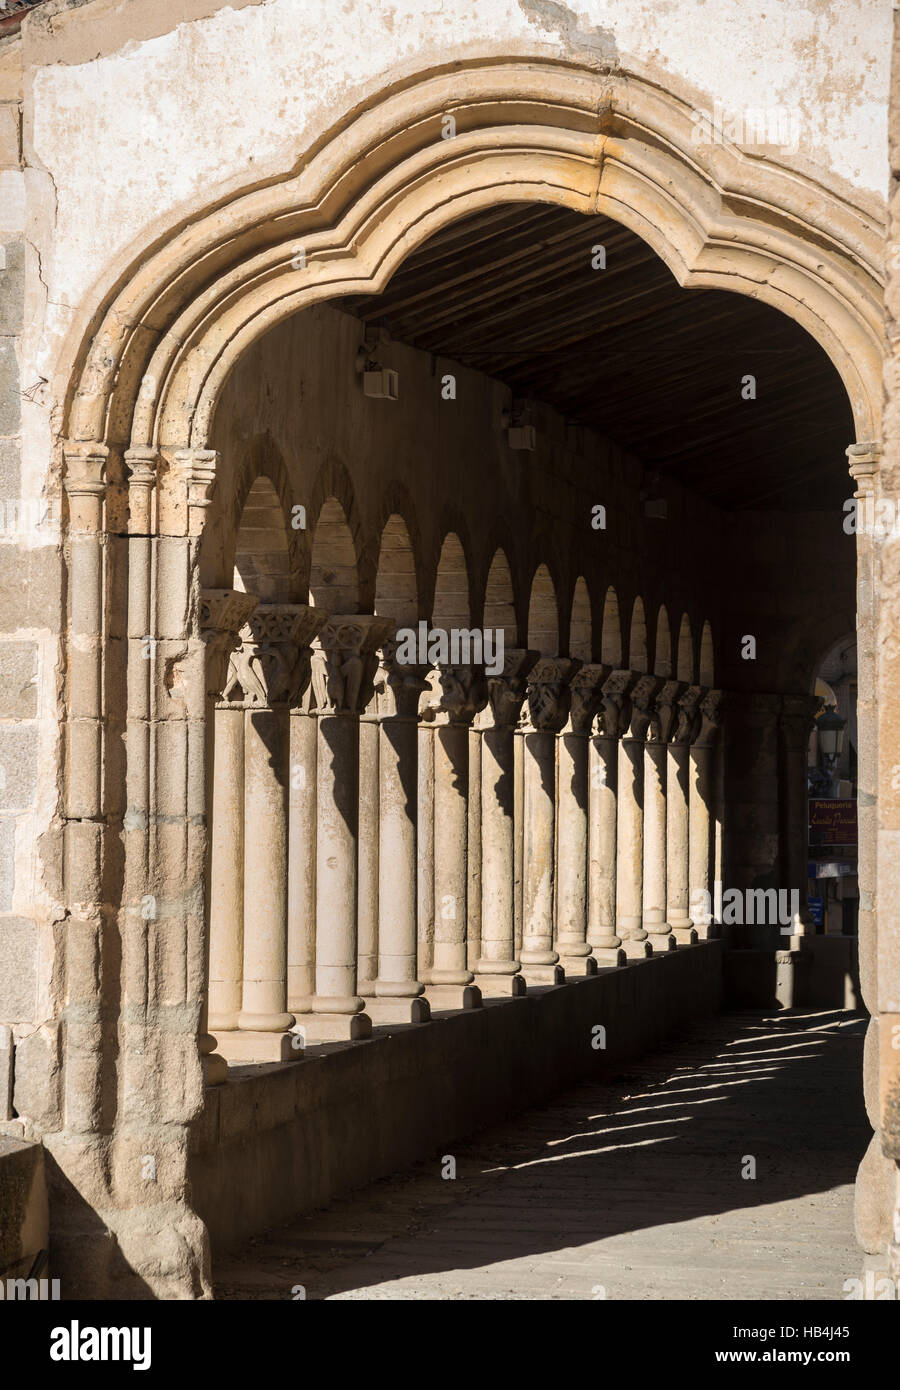 The Romanesque, arcaded portico  of San Martin church, in the Plaza Medina del Campo, Segovia, Spain - Stock Image